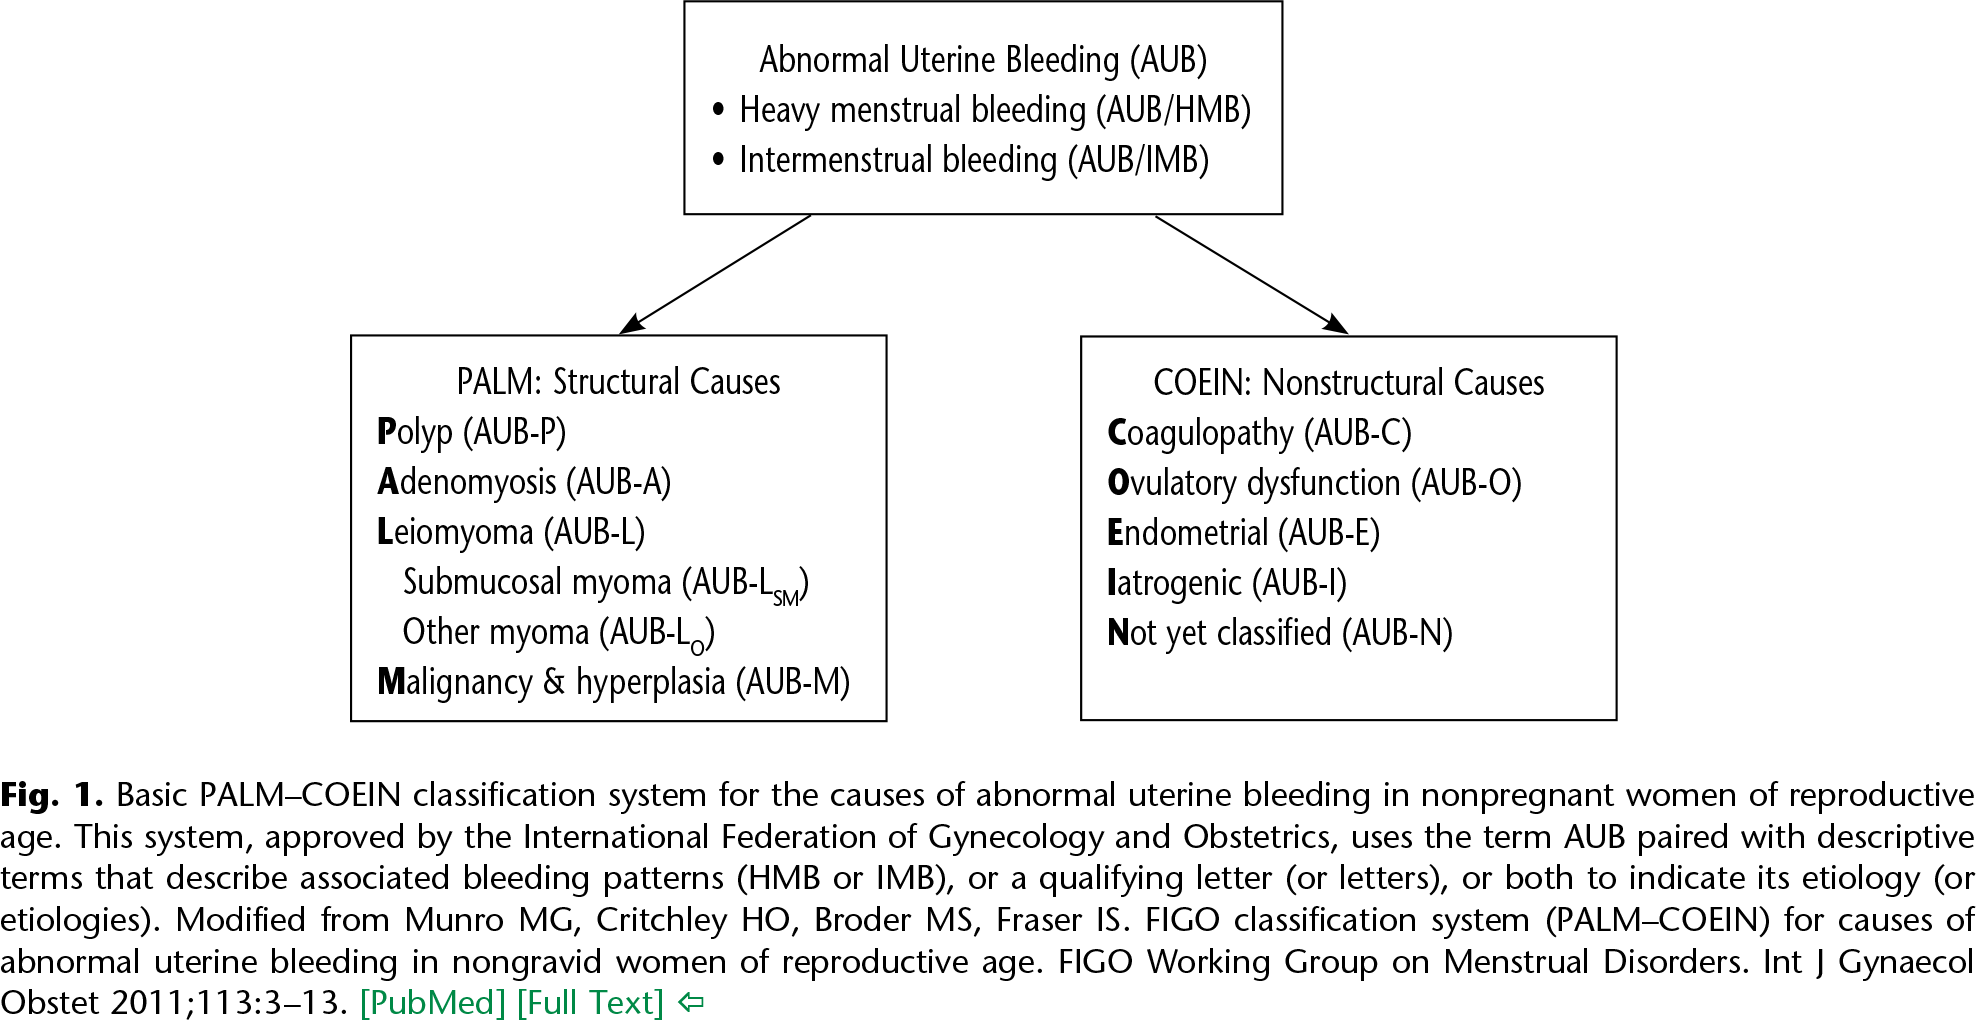 Fig. 1. Basic PALM–COEIN classification system for the causes of abnormal uterine bleeding in nonpregnant women of reproductive age. This system, approved by the International Federation of Gynecology and Obstetrics, uses the term AUB paired with descriptive terms that describe associated bleeding patterns (HMB or IMB), or a qualifying letter (or letters), or both to indicate its etiology (or etiologies). Modified from Munro MG, Critchley HO, Broder MS, Fraser IS. FIGO classification system (PALM–COEIN) for causes of abnormal uterine bleeding in nongravid women of reproductive age. FIGO Working Group on Menstrual Disorders. Int J Gynaecol Obstet 2011;113:3–13. [PubMed] [Full Text]